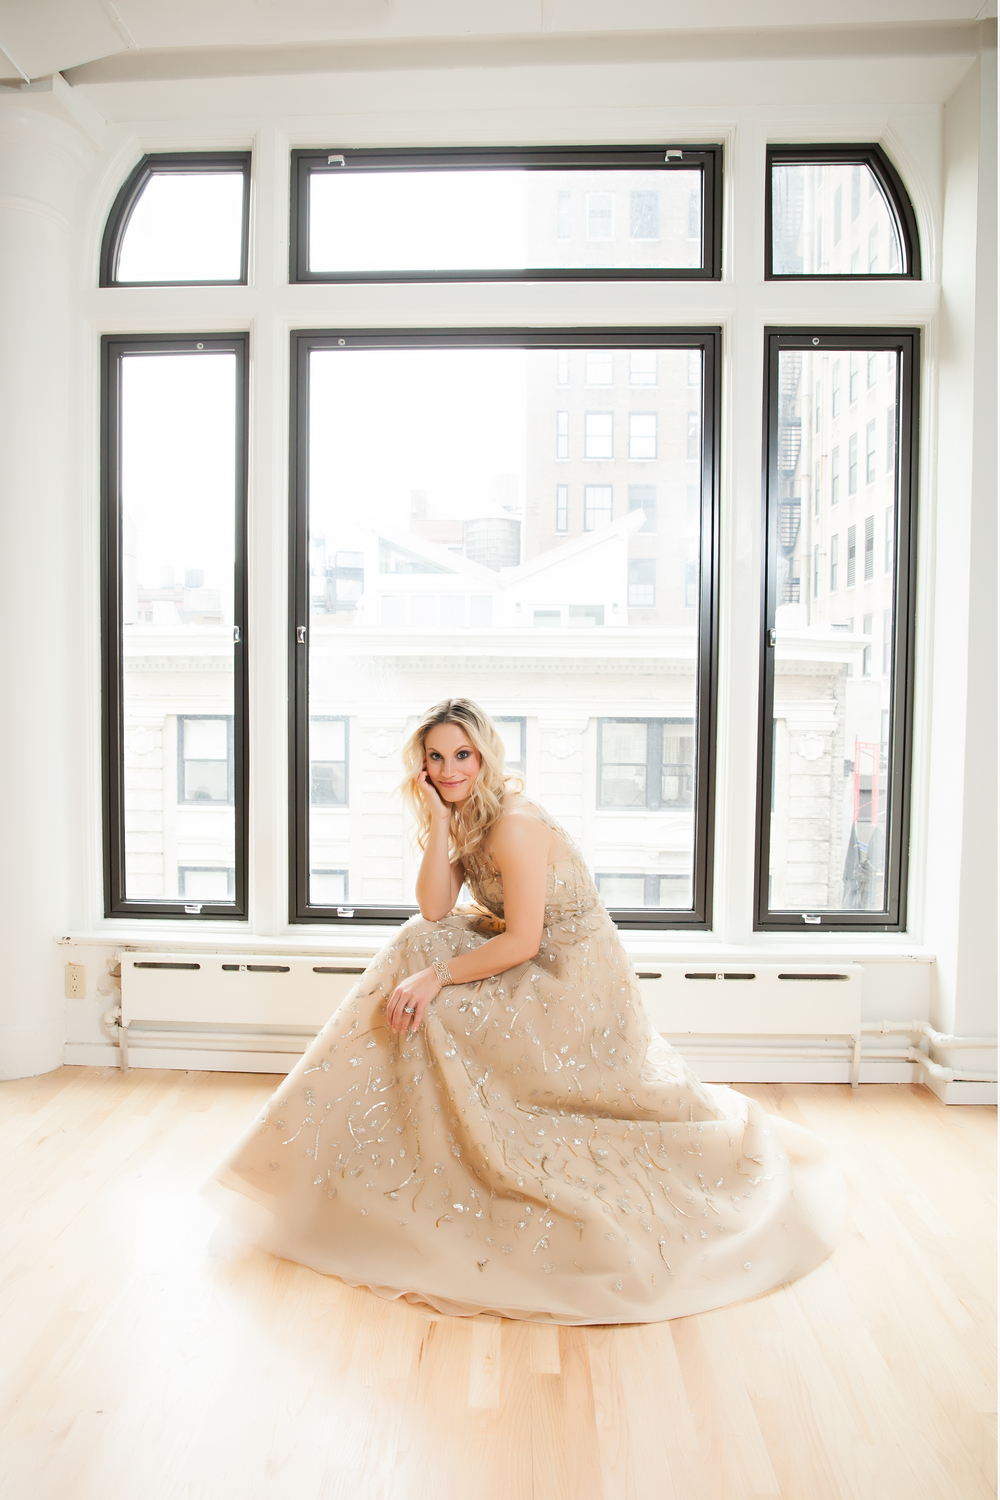 Ceci_Style_Ceci_New_York_Bride_Wedding_Luxury_Sofia-Negron_CeciStyle_4.jpg